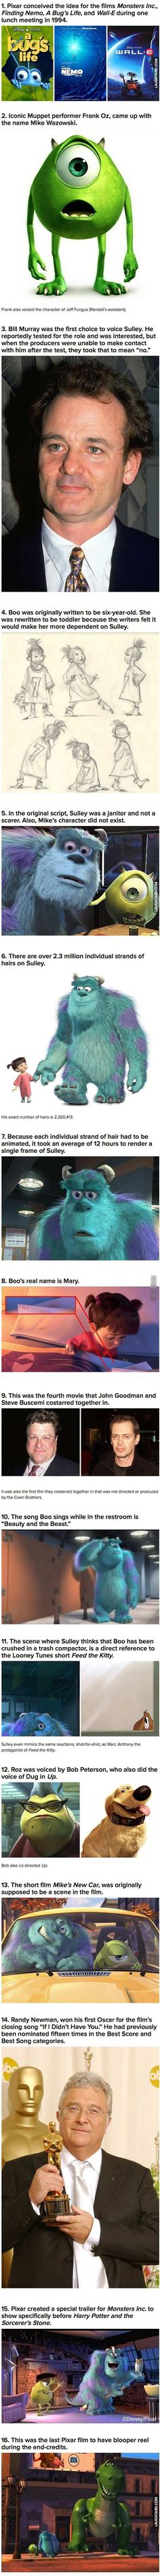 Facts about Monsters Inc